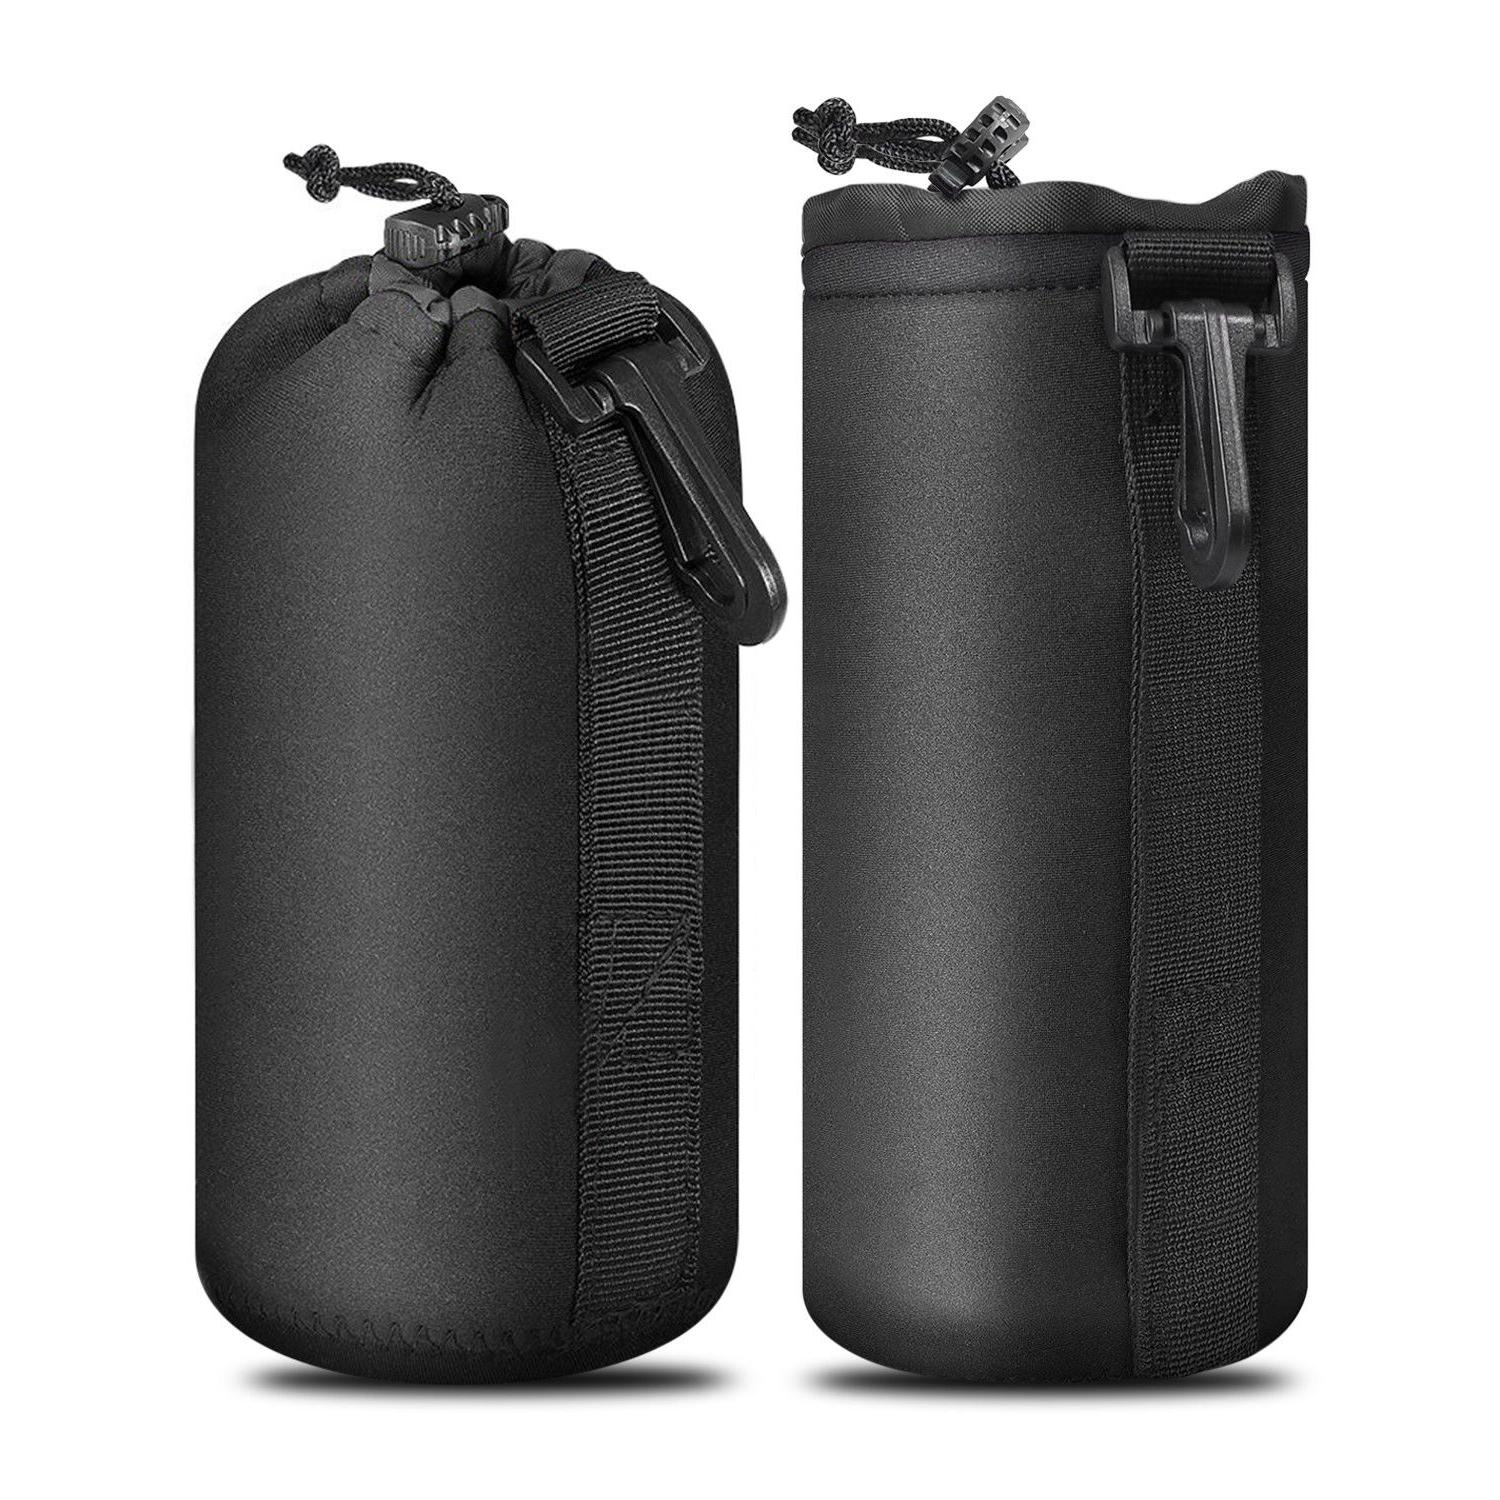 Soft Lens Pouch Protective Carry Bag Case for S